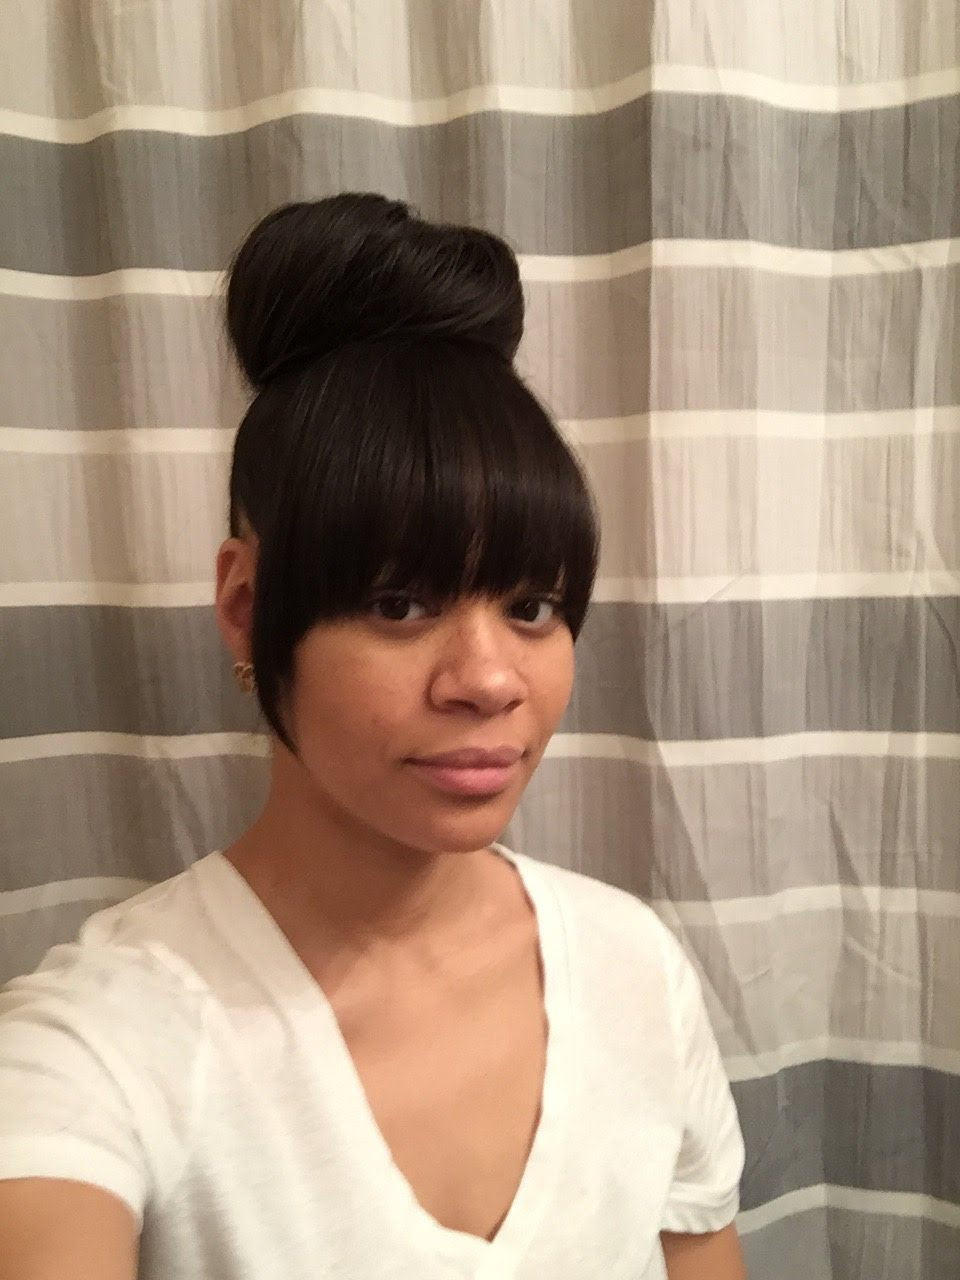 Bun And Bangs Hairstyle With Weave : bangs, hairstyle, weave, Natural